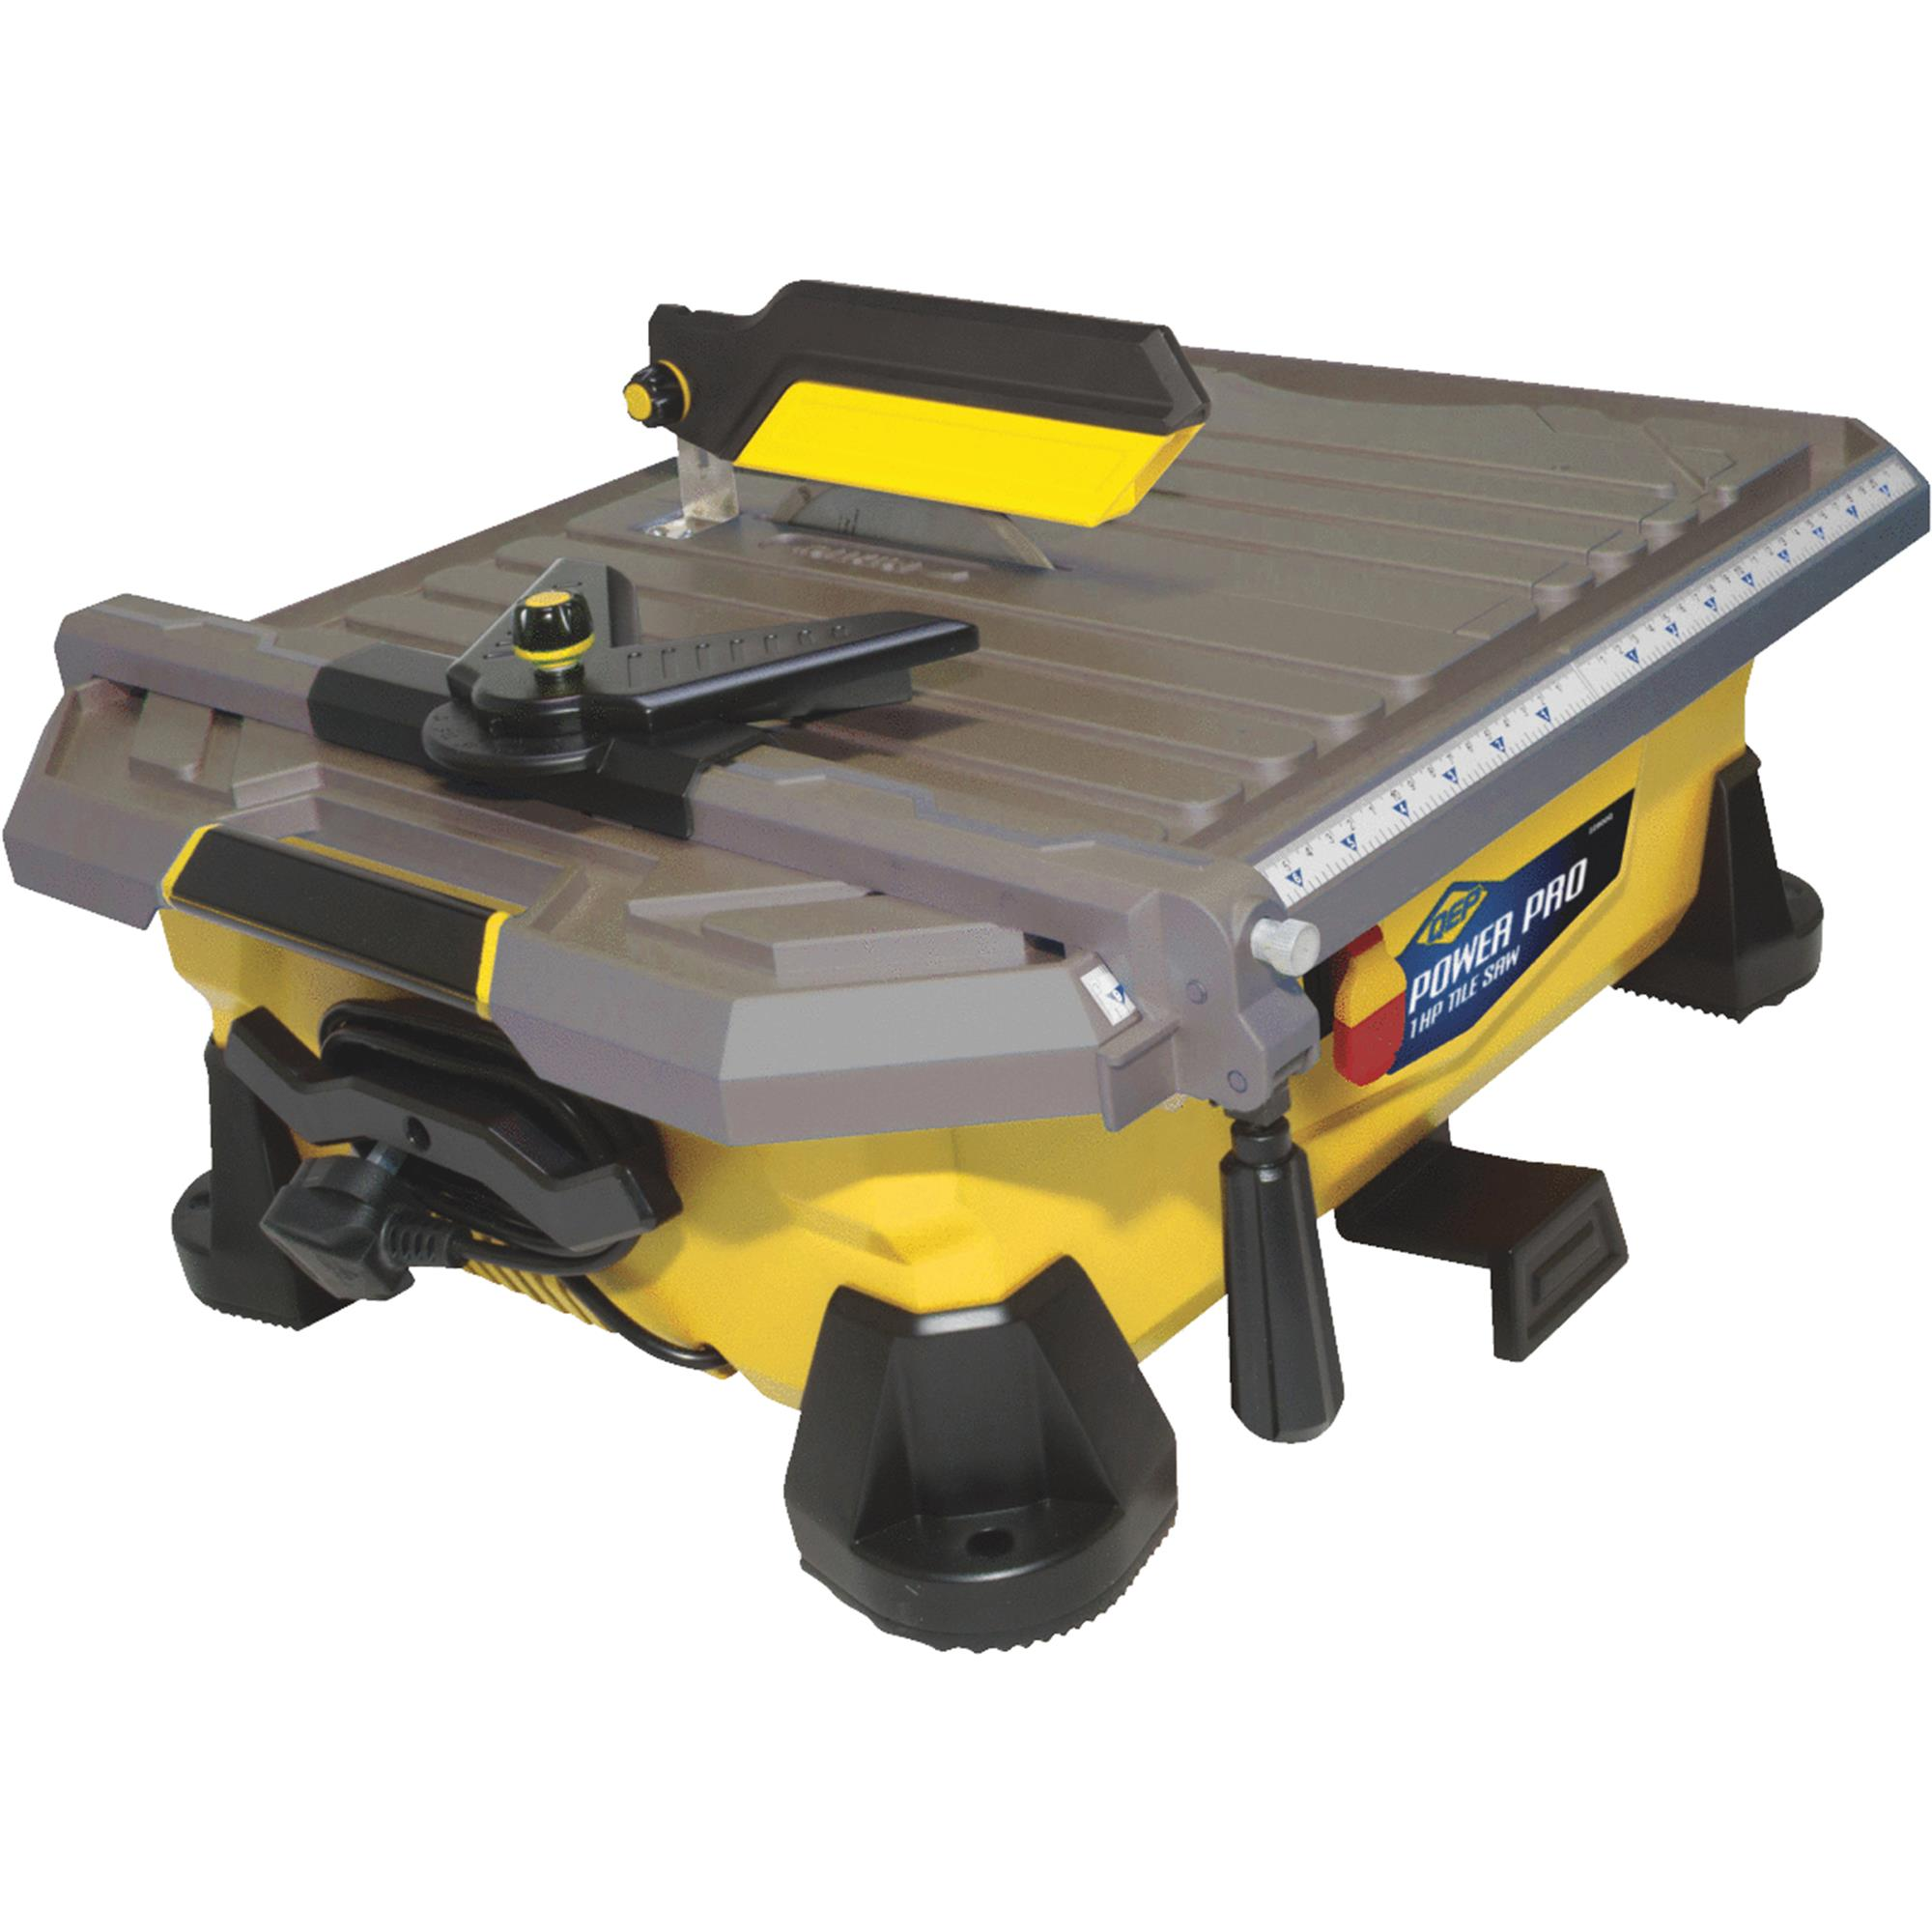 "QEP 7"" Power Pro Tile Saw by Q.E.P./Roberts"